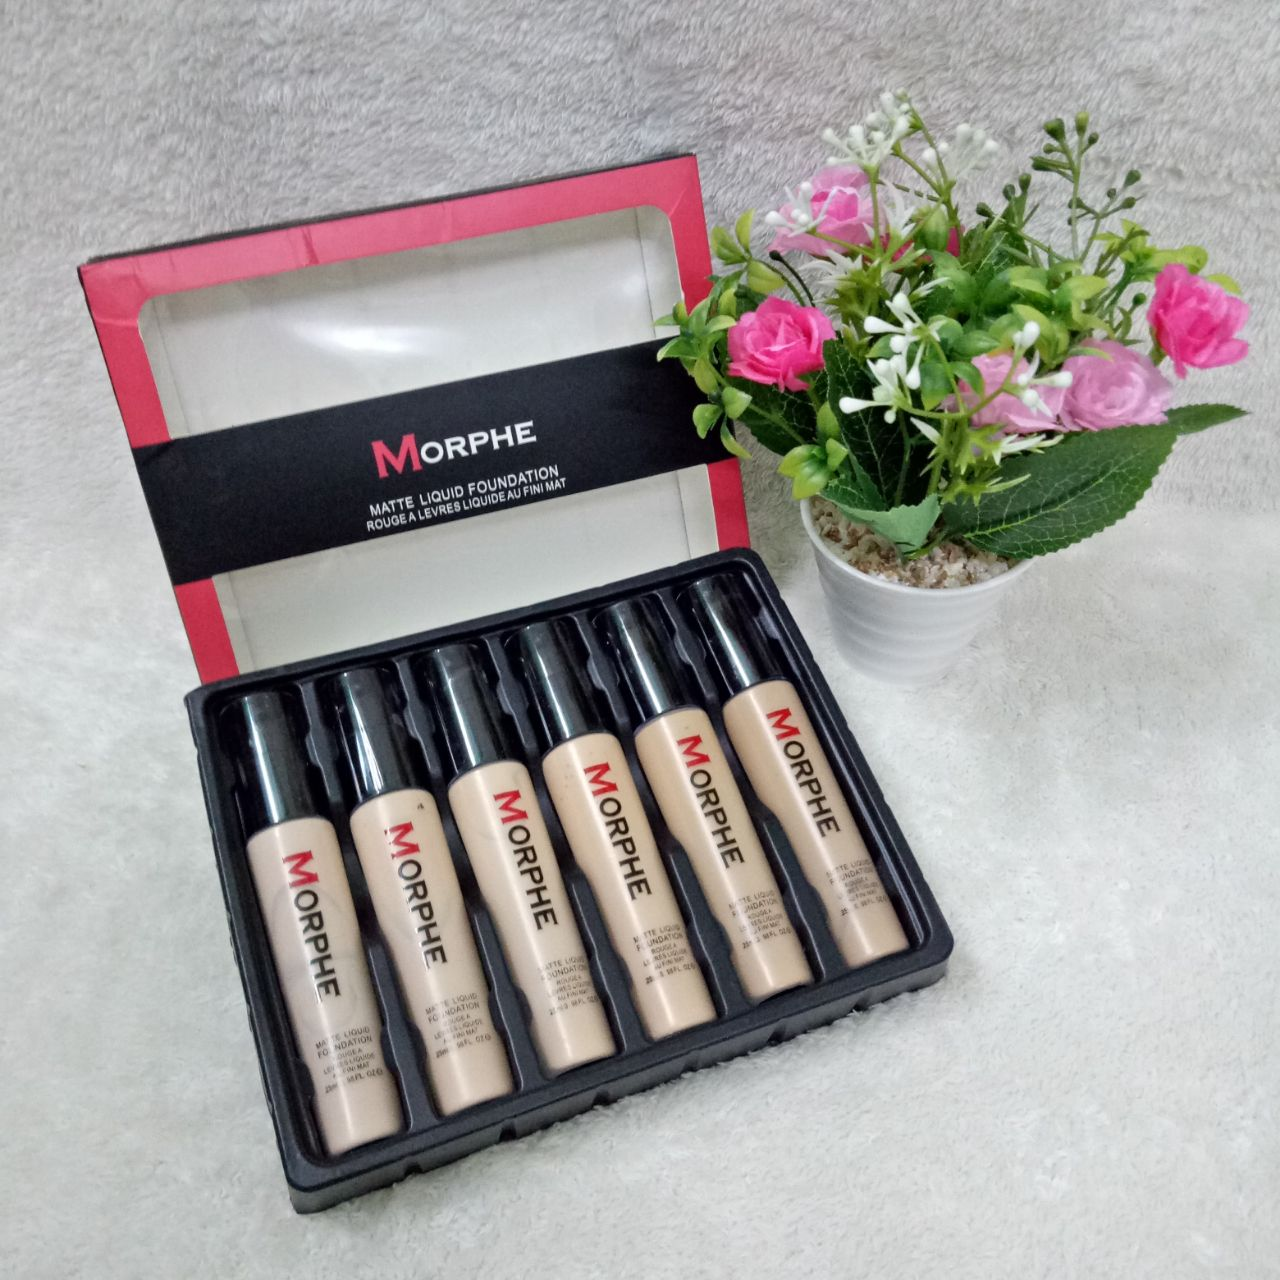 Morphe Matte Liquid Foundation